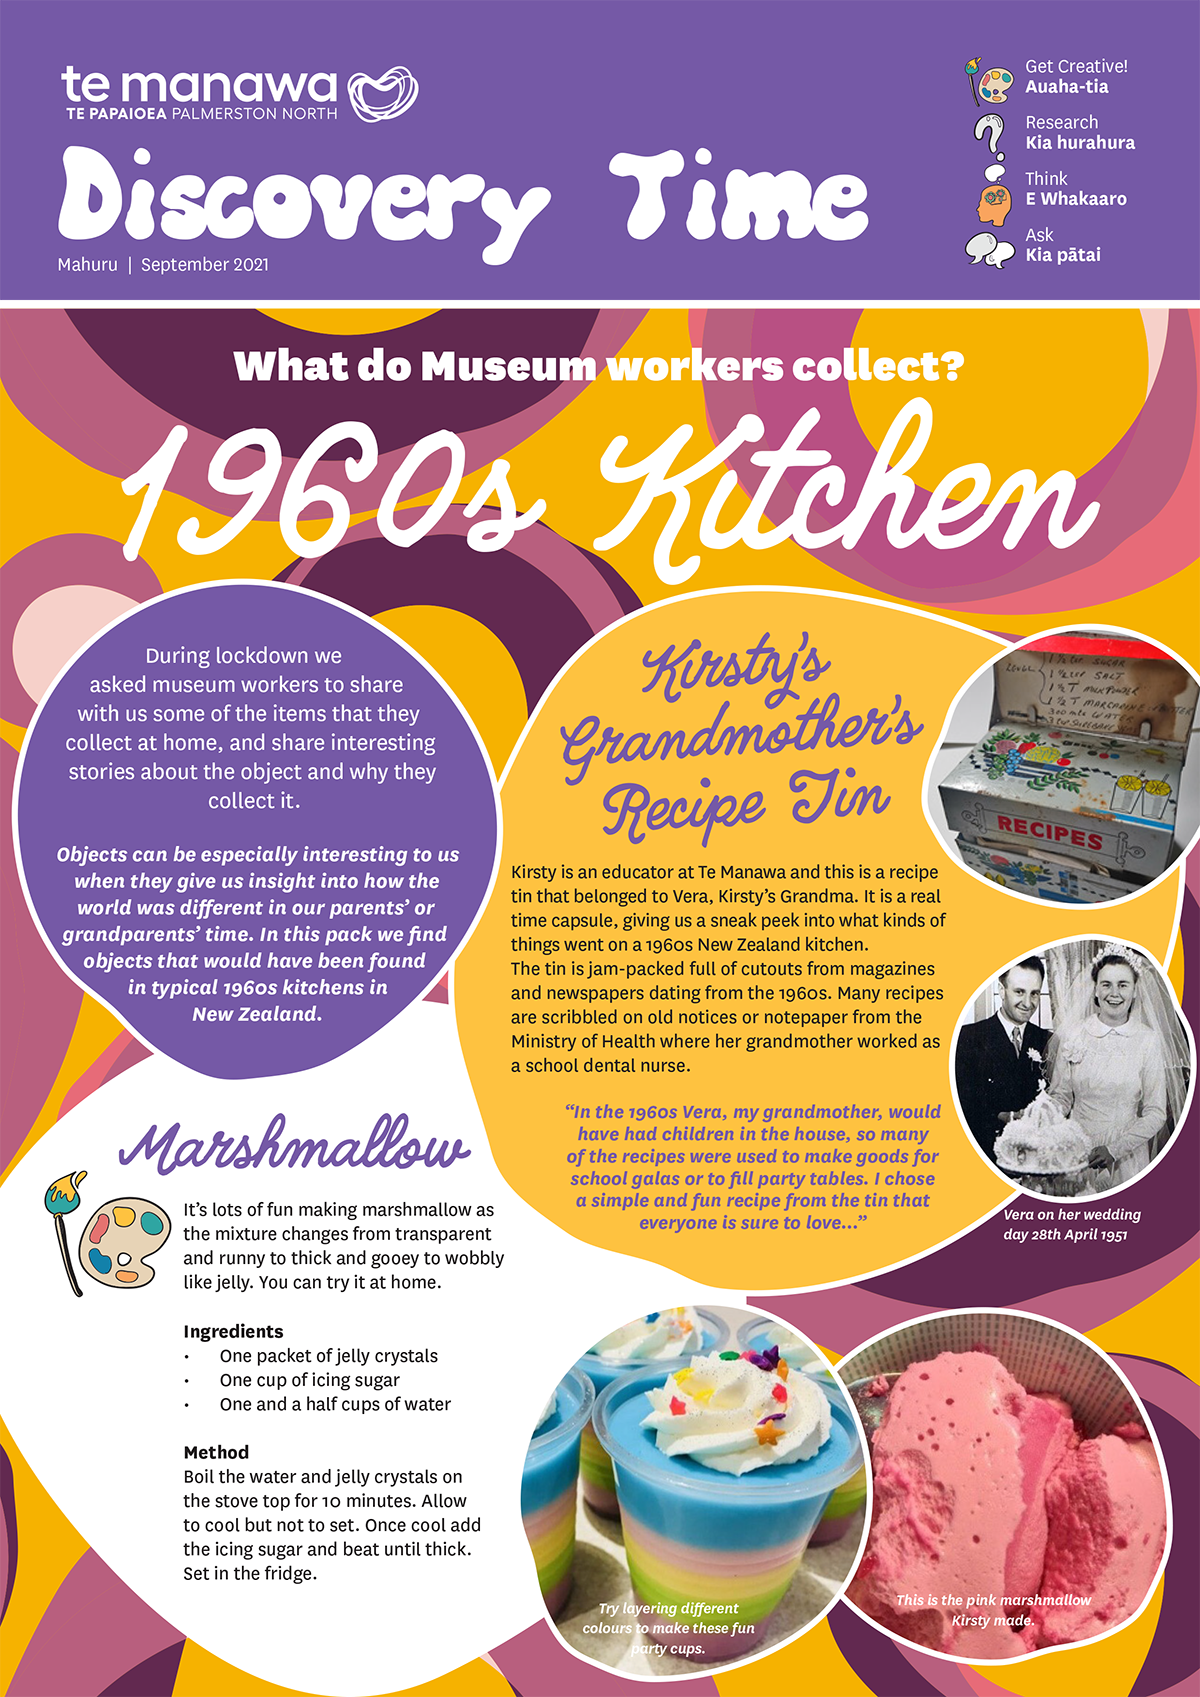 https://www.temanawa.co.nz/wp-content/uploads/2021/10/Discovery-Time-1960s-Kitchen-v1-1.png